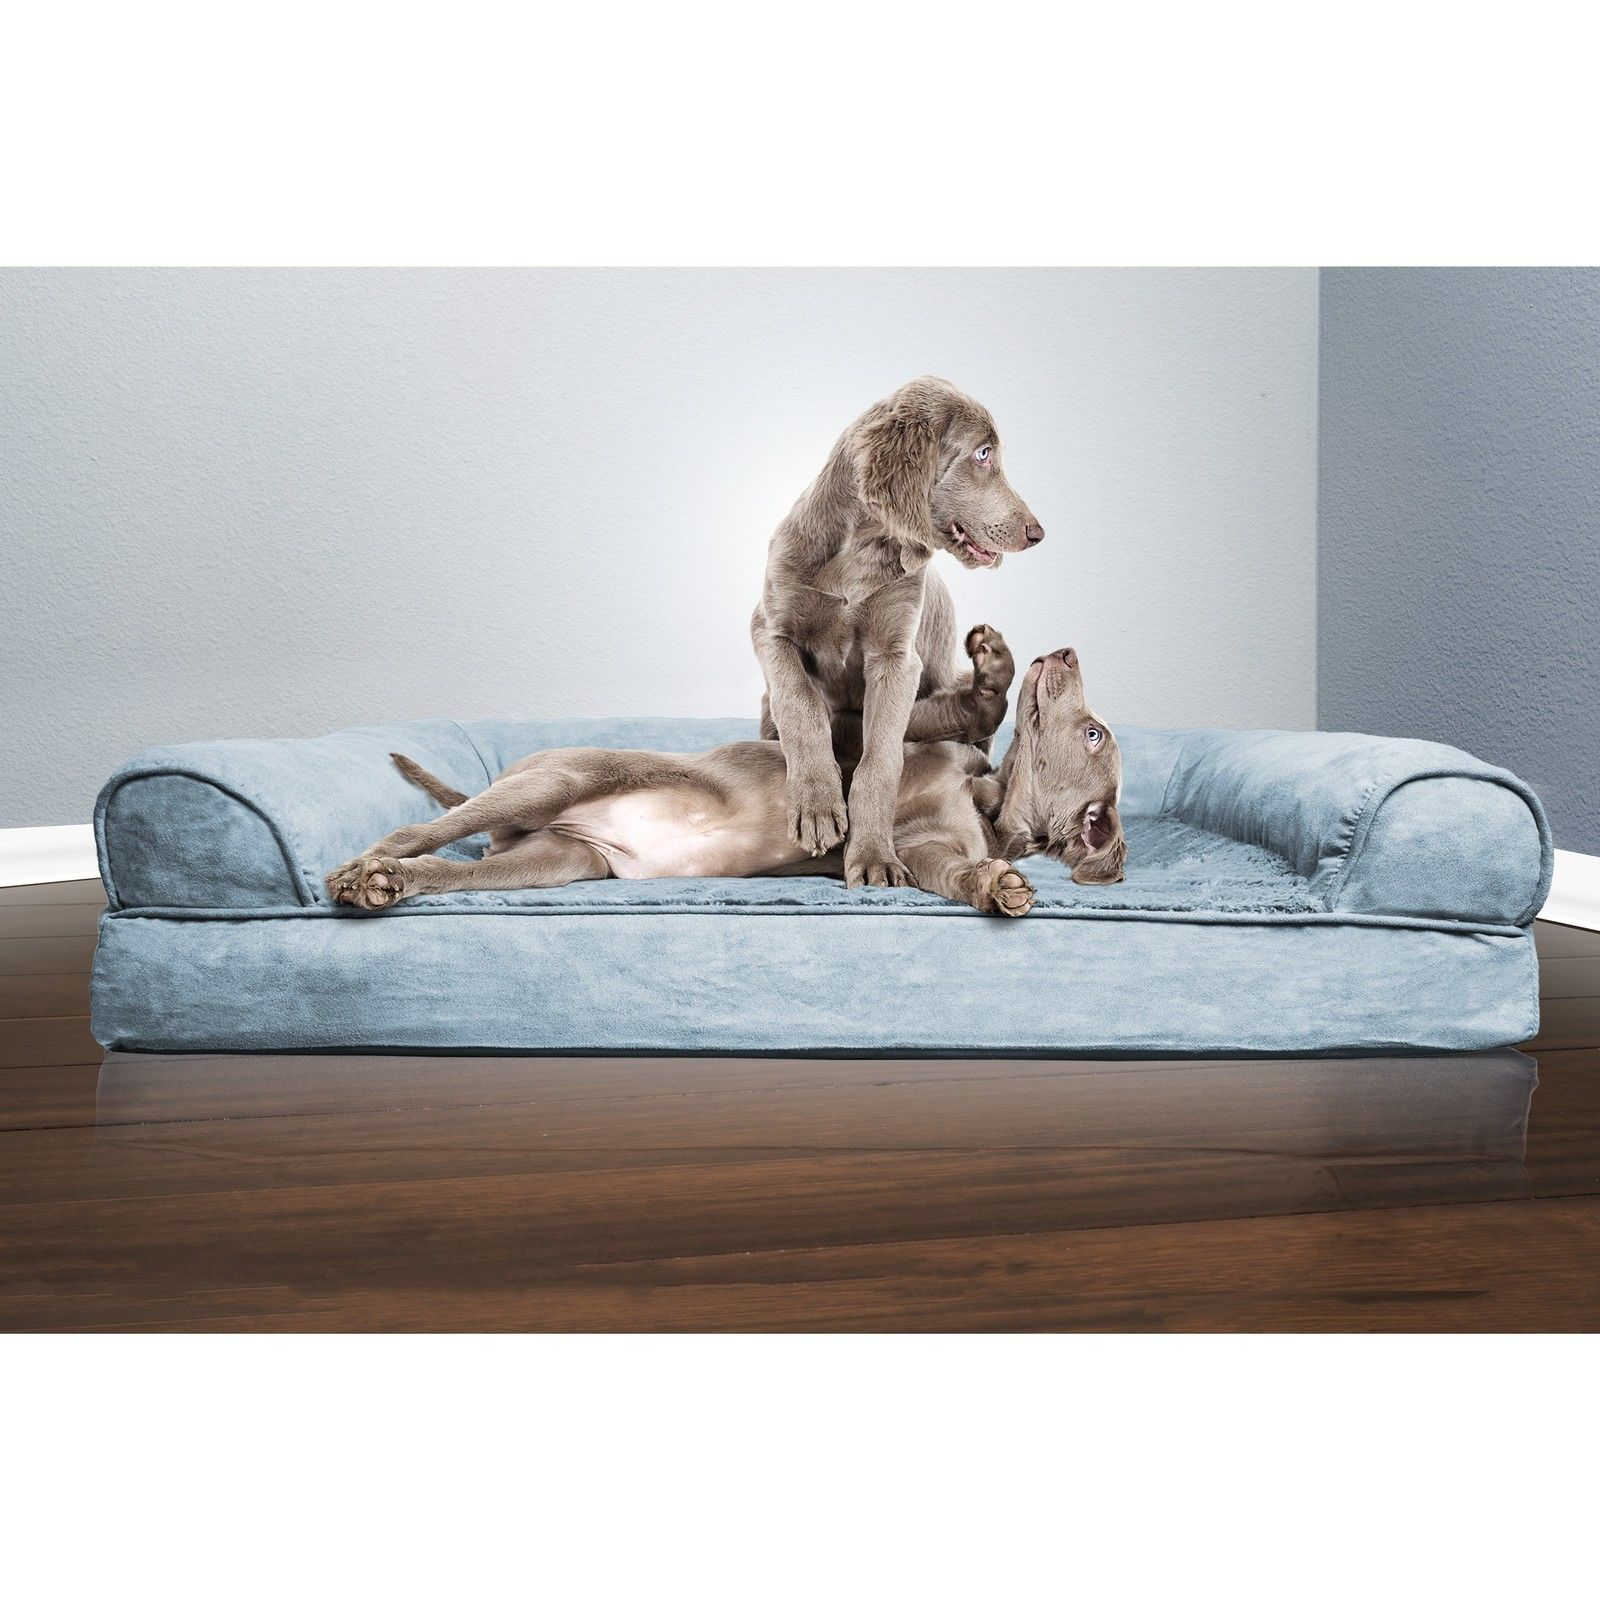 Large Dog Bed Sofa Pet Luxury Plush Suede Orthopedic